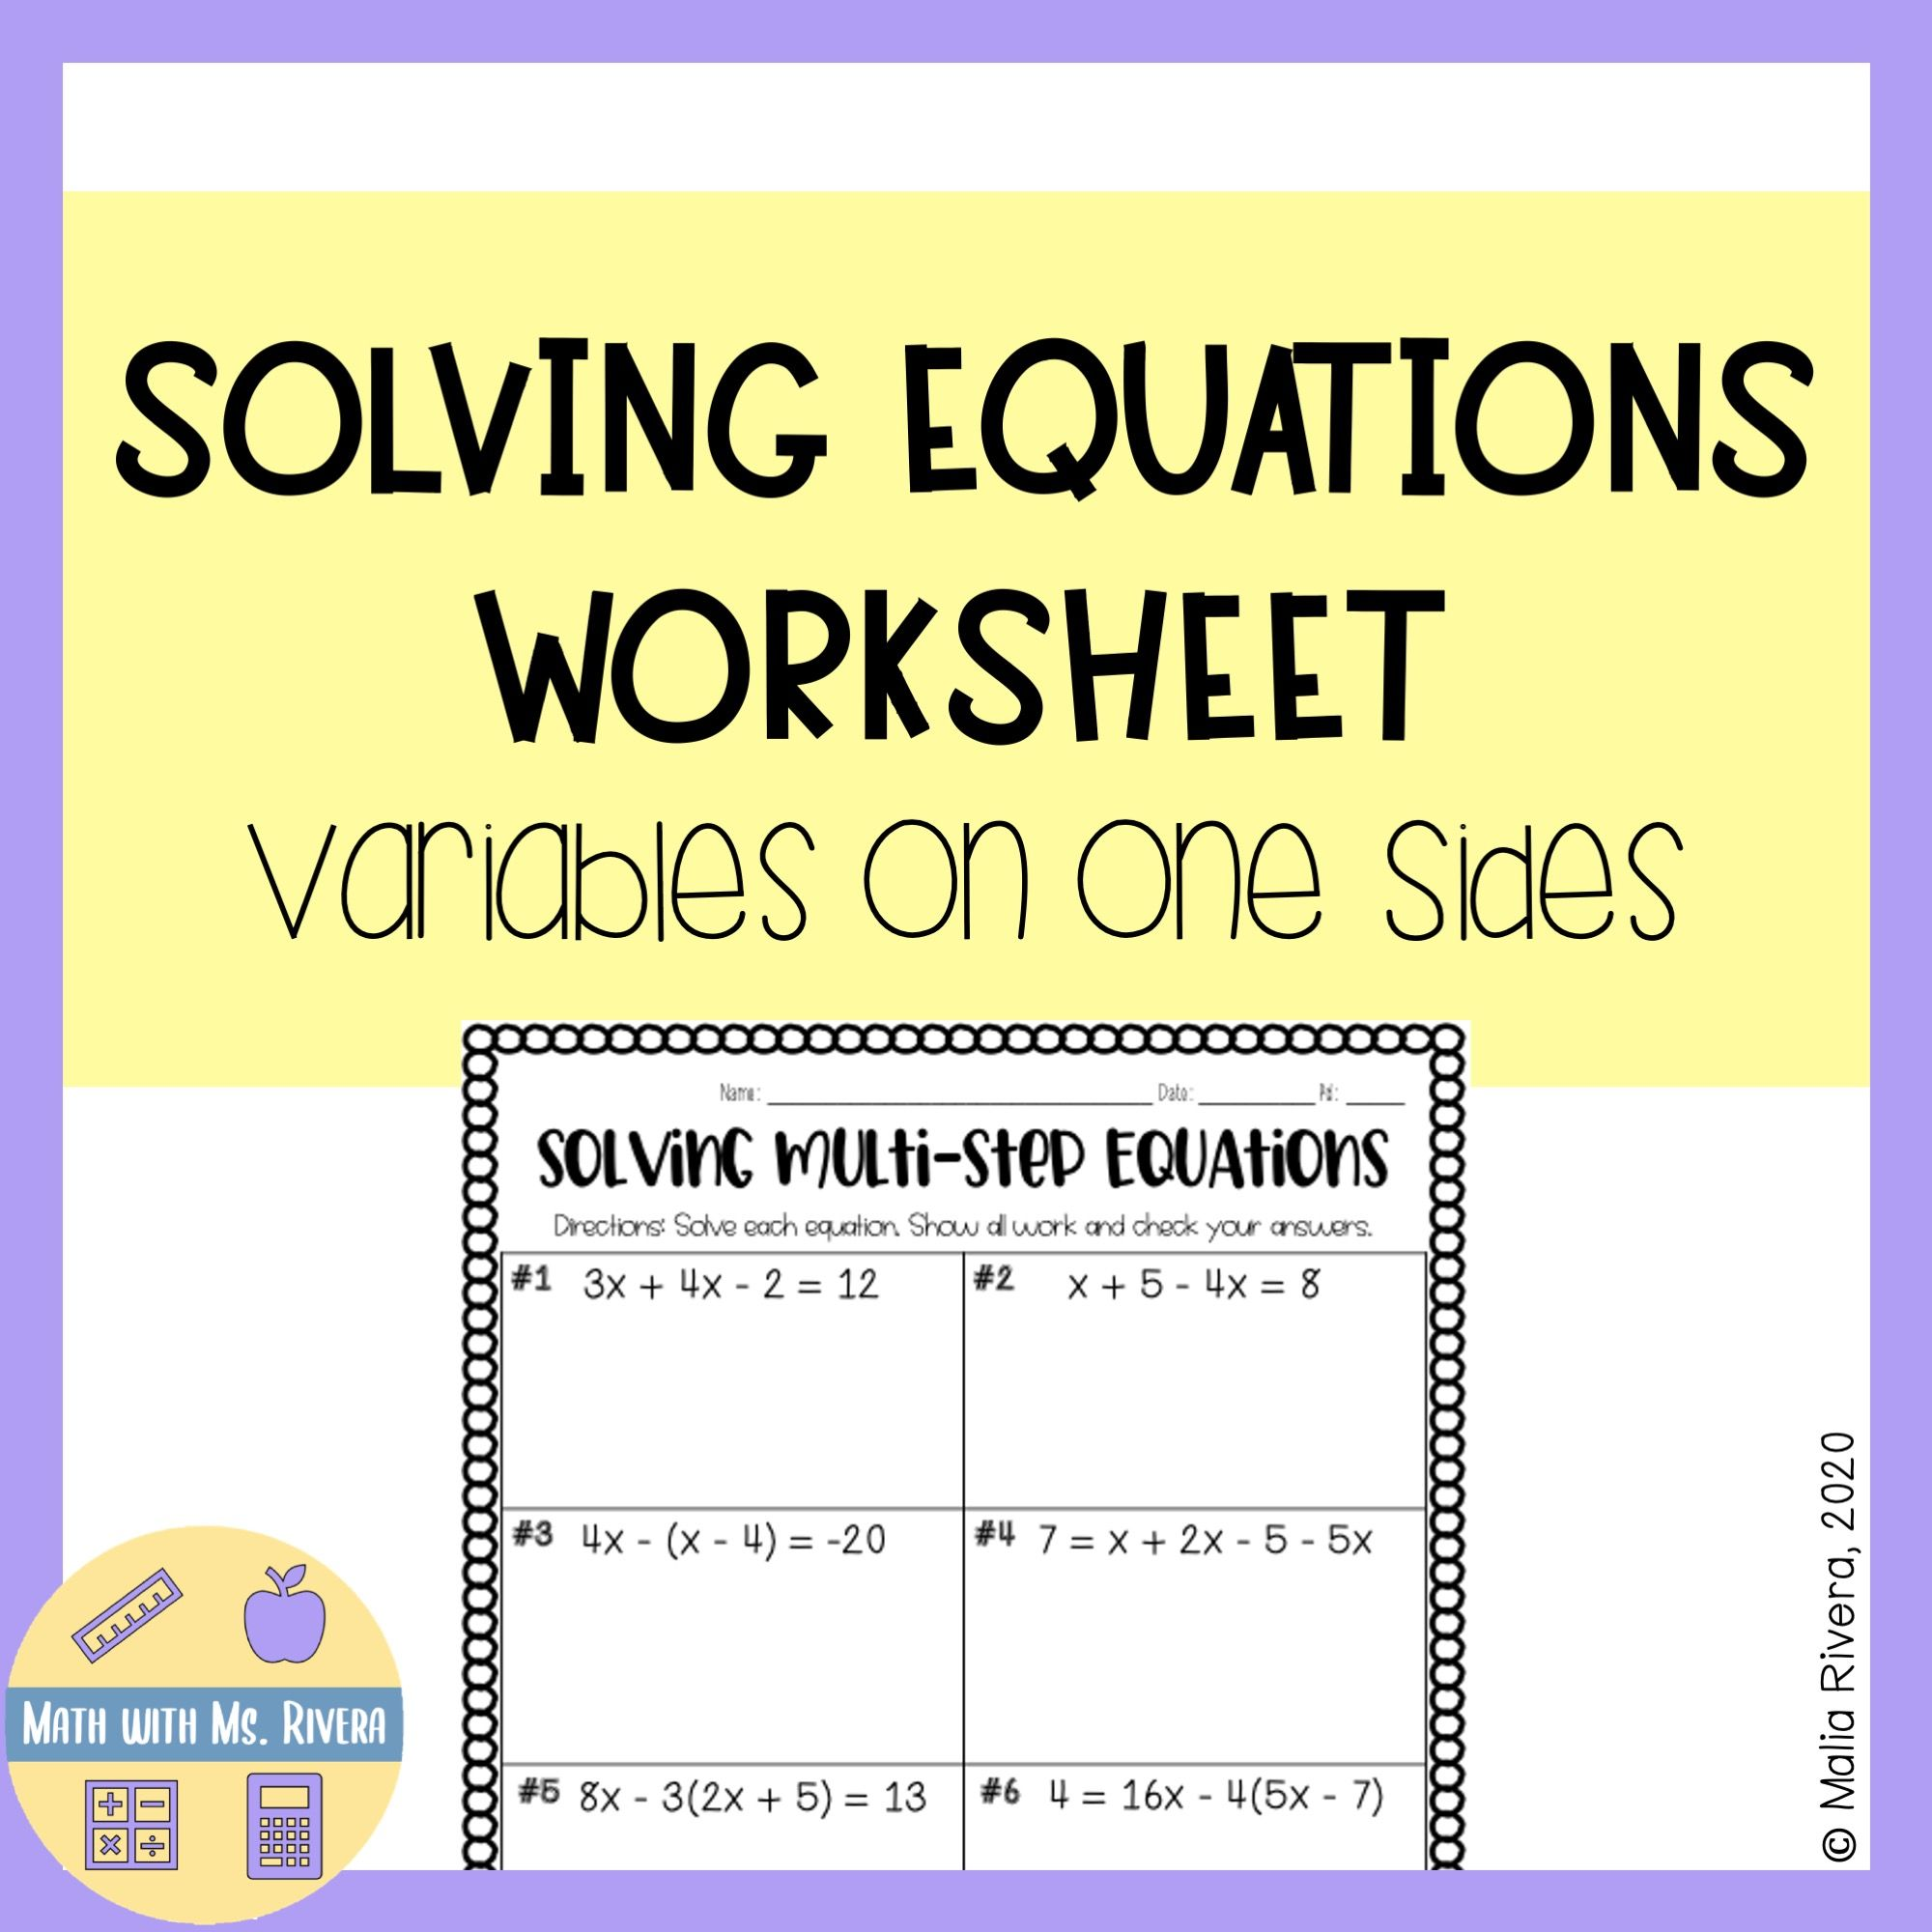 Solving Multi Step Equations Worksheet Variables On One